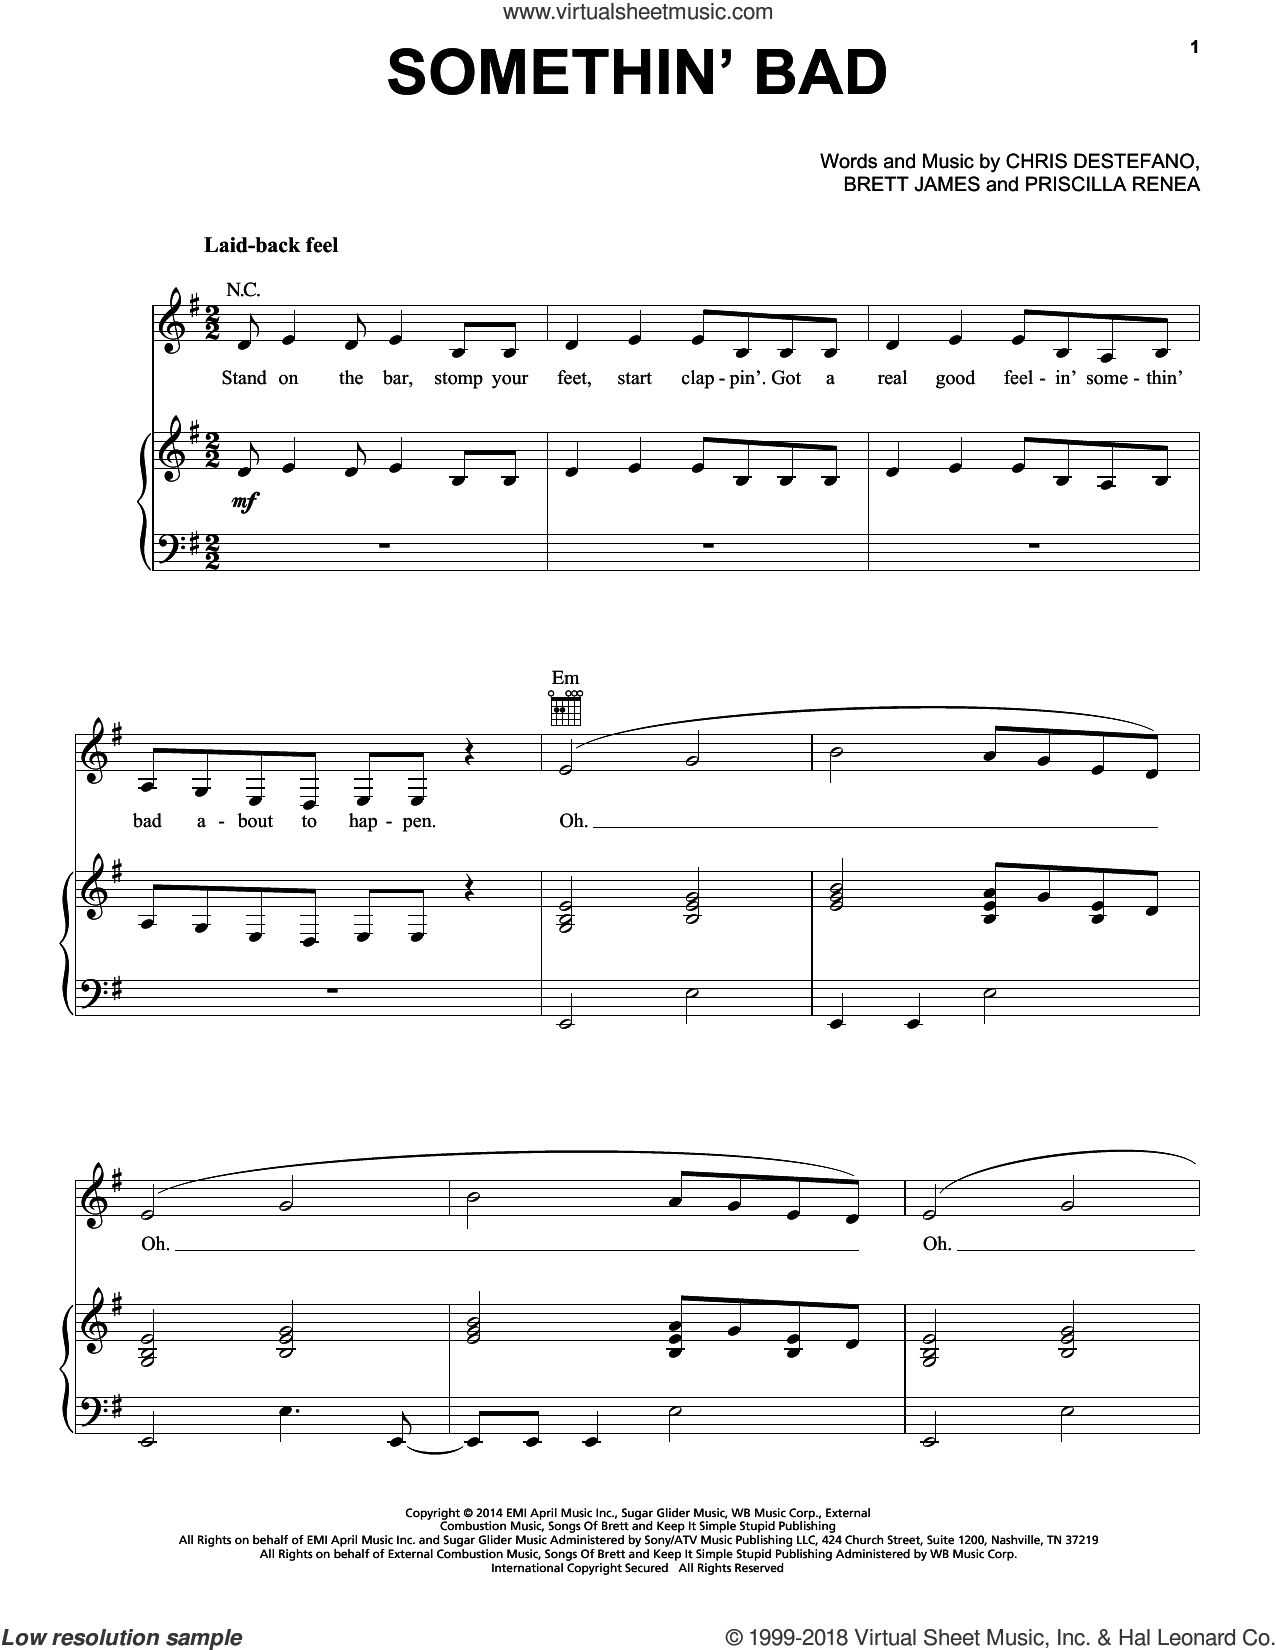 Somethin' Bad sheet music for voice, piano or guitar by Priscilla Renea